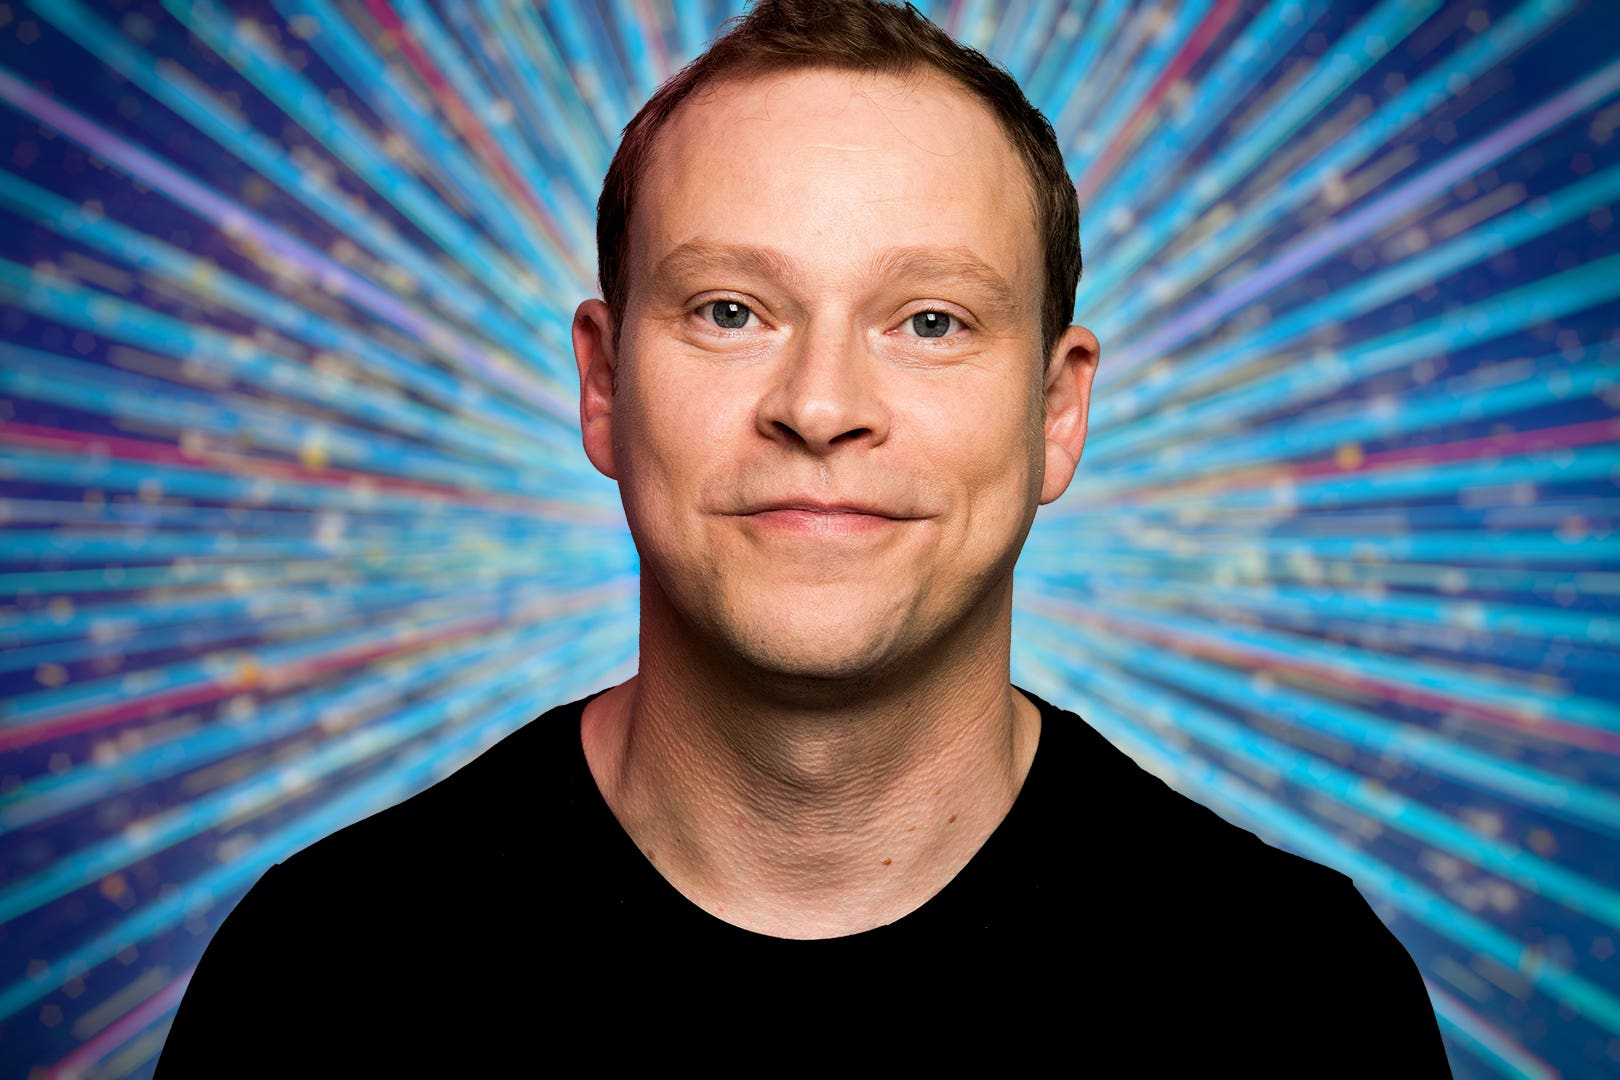 Robert Webb quits Strictly Come Dancing